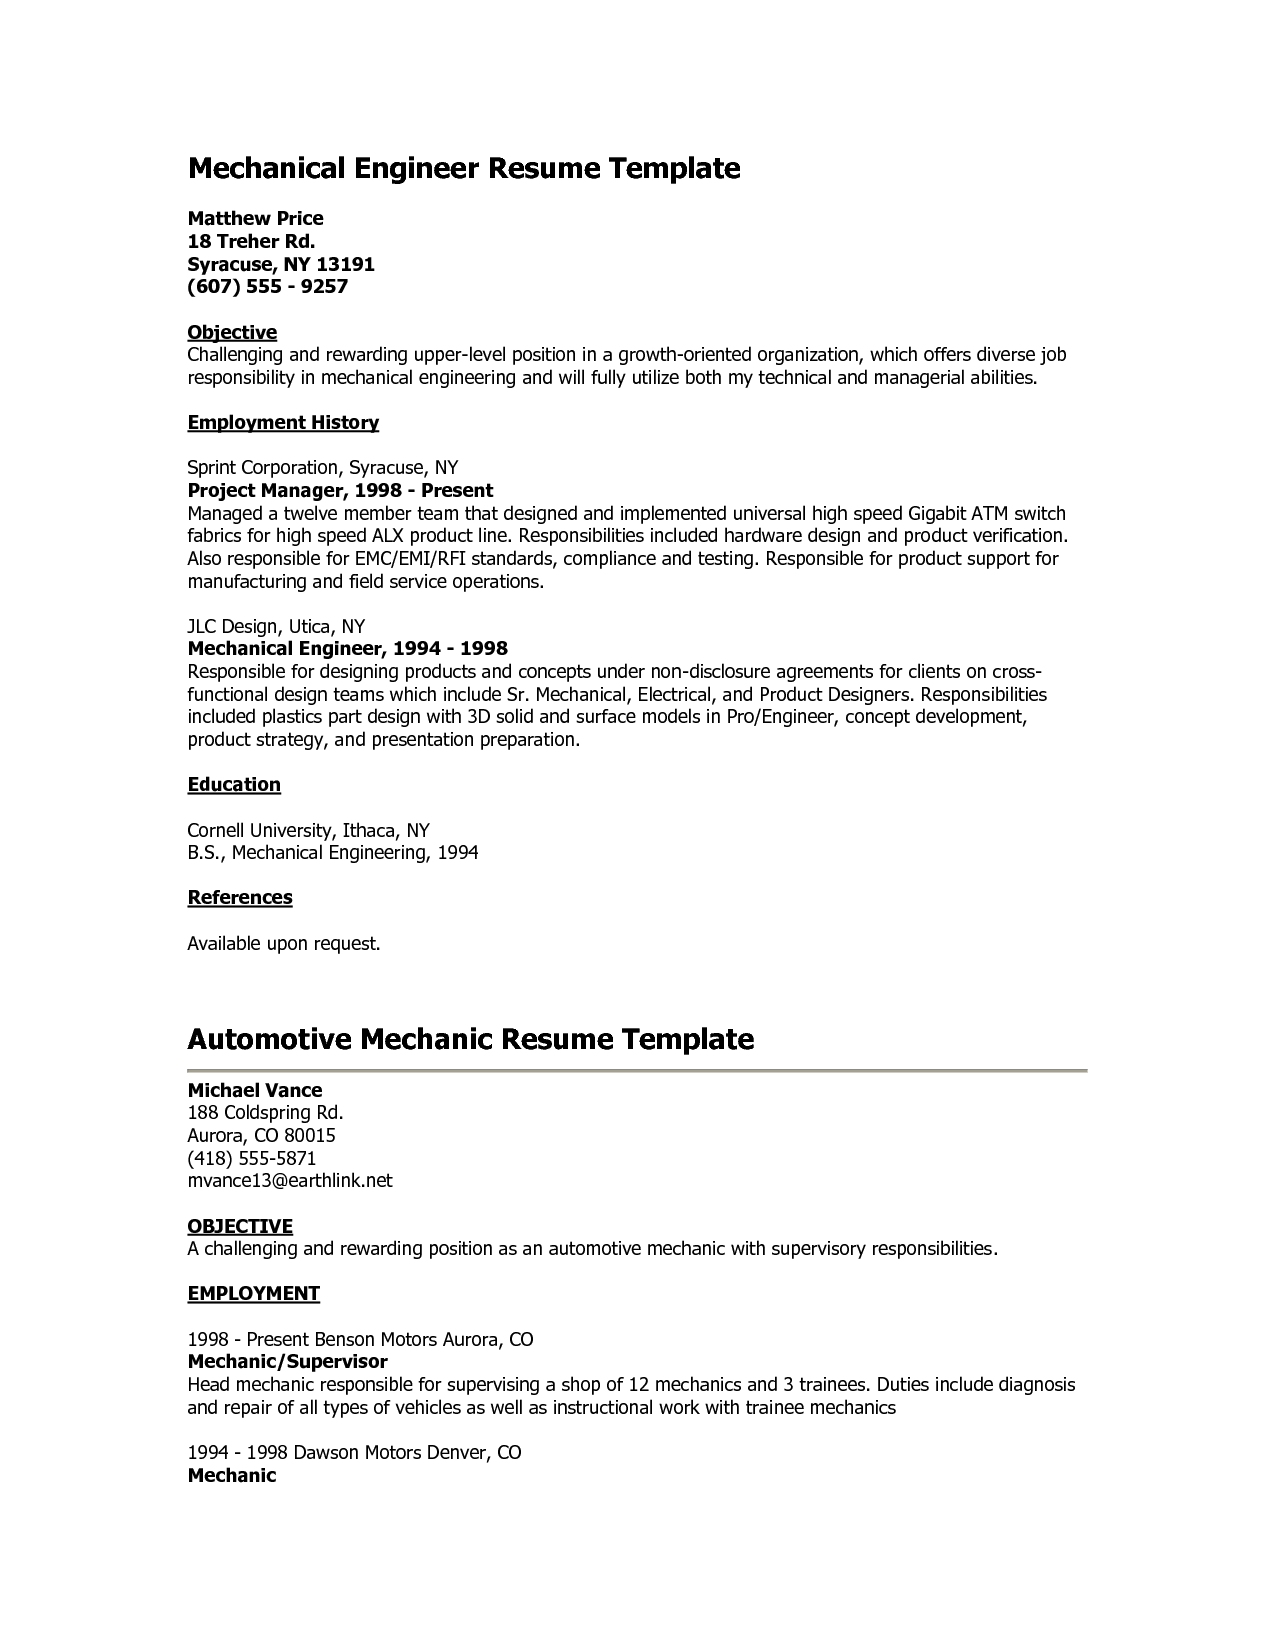 Sample Resume No Experience Captivating Bank Teller Resume With No Experience  Httpwww.jobresume.website .